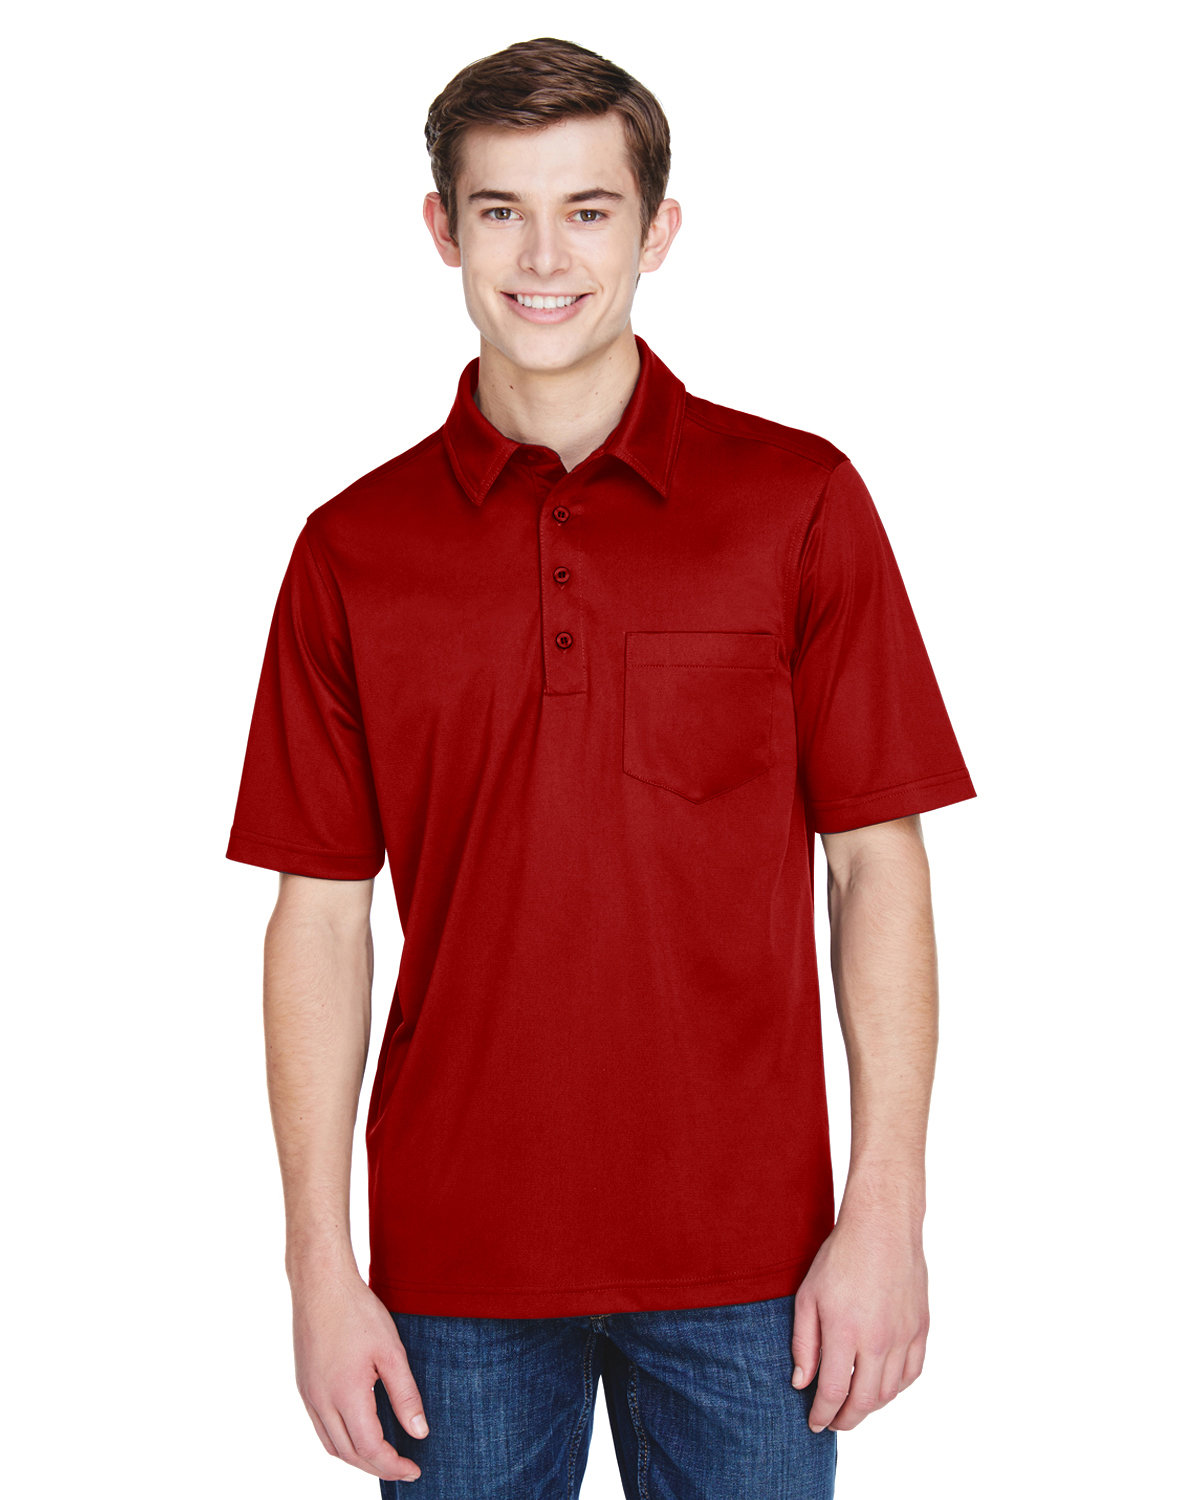 Extreme Men's Eperformance™ Shift SnagProtection Plus Polo CLASSIC RED